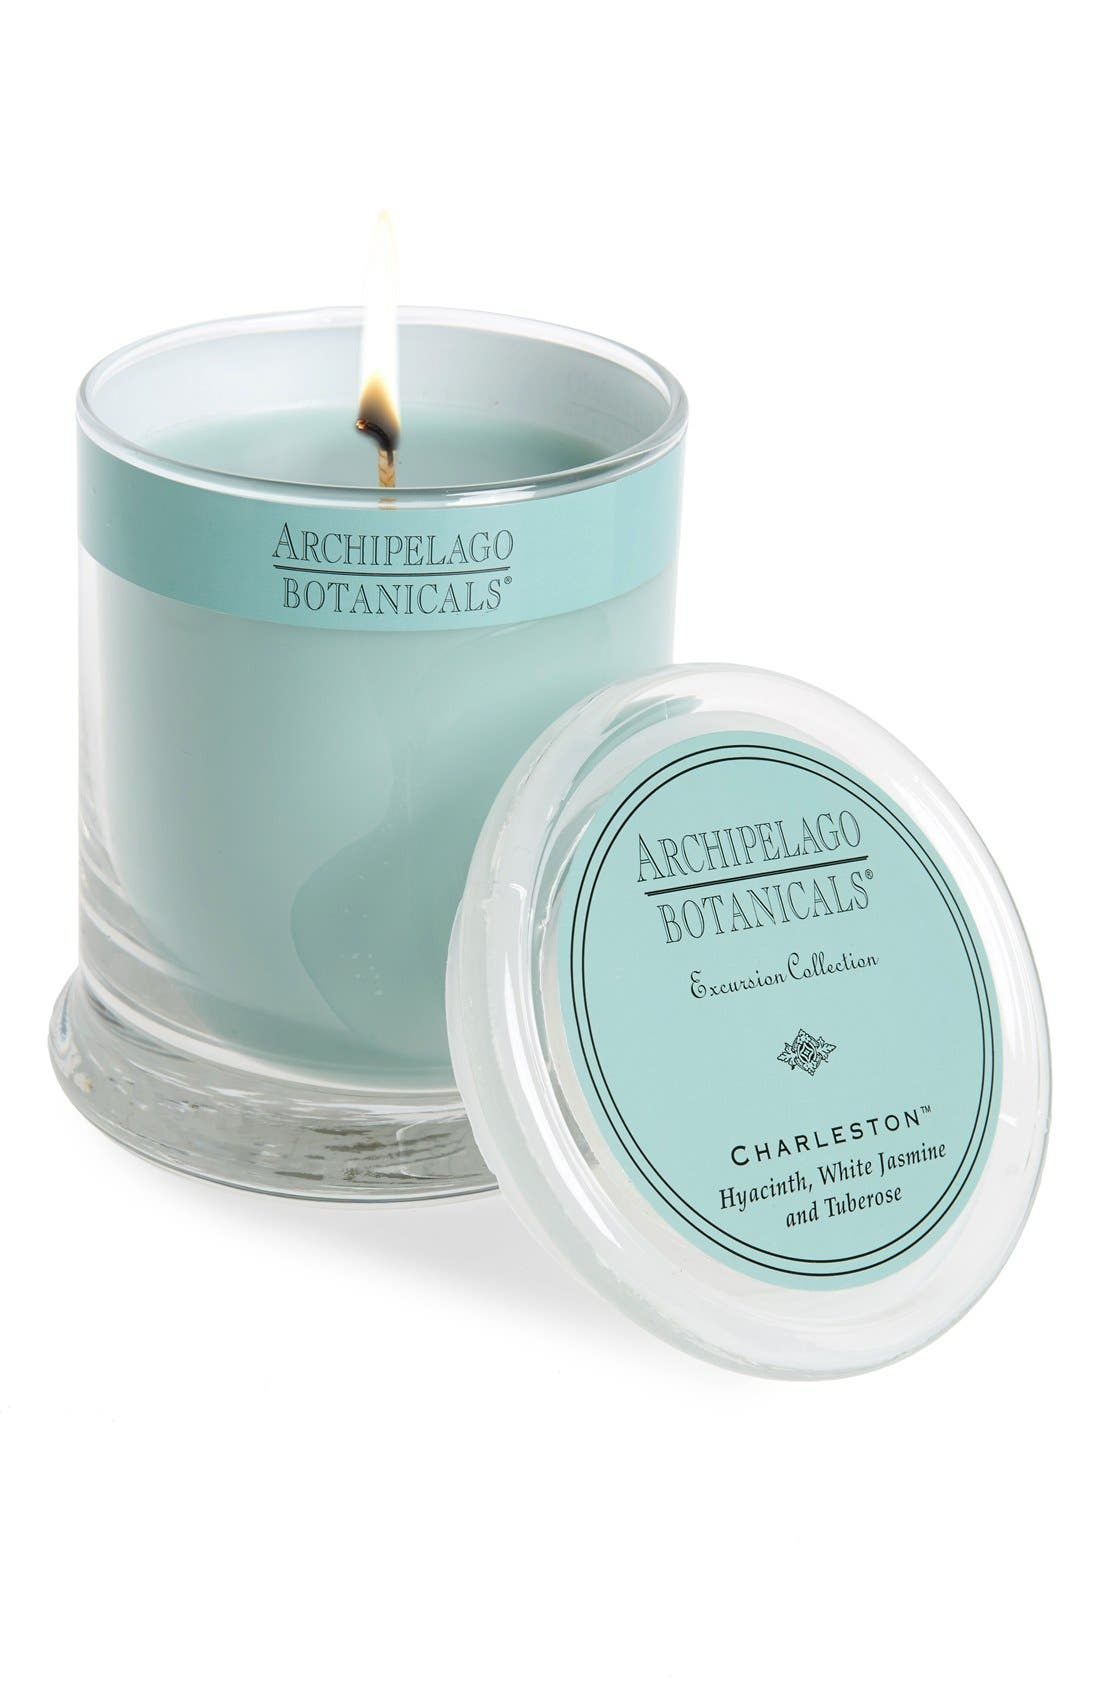 Alternate Image 1 Selected - Archipelago Botanicals 'Excursion' Glass Jar Candle